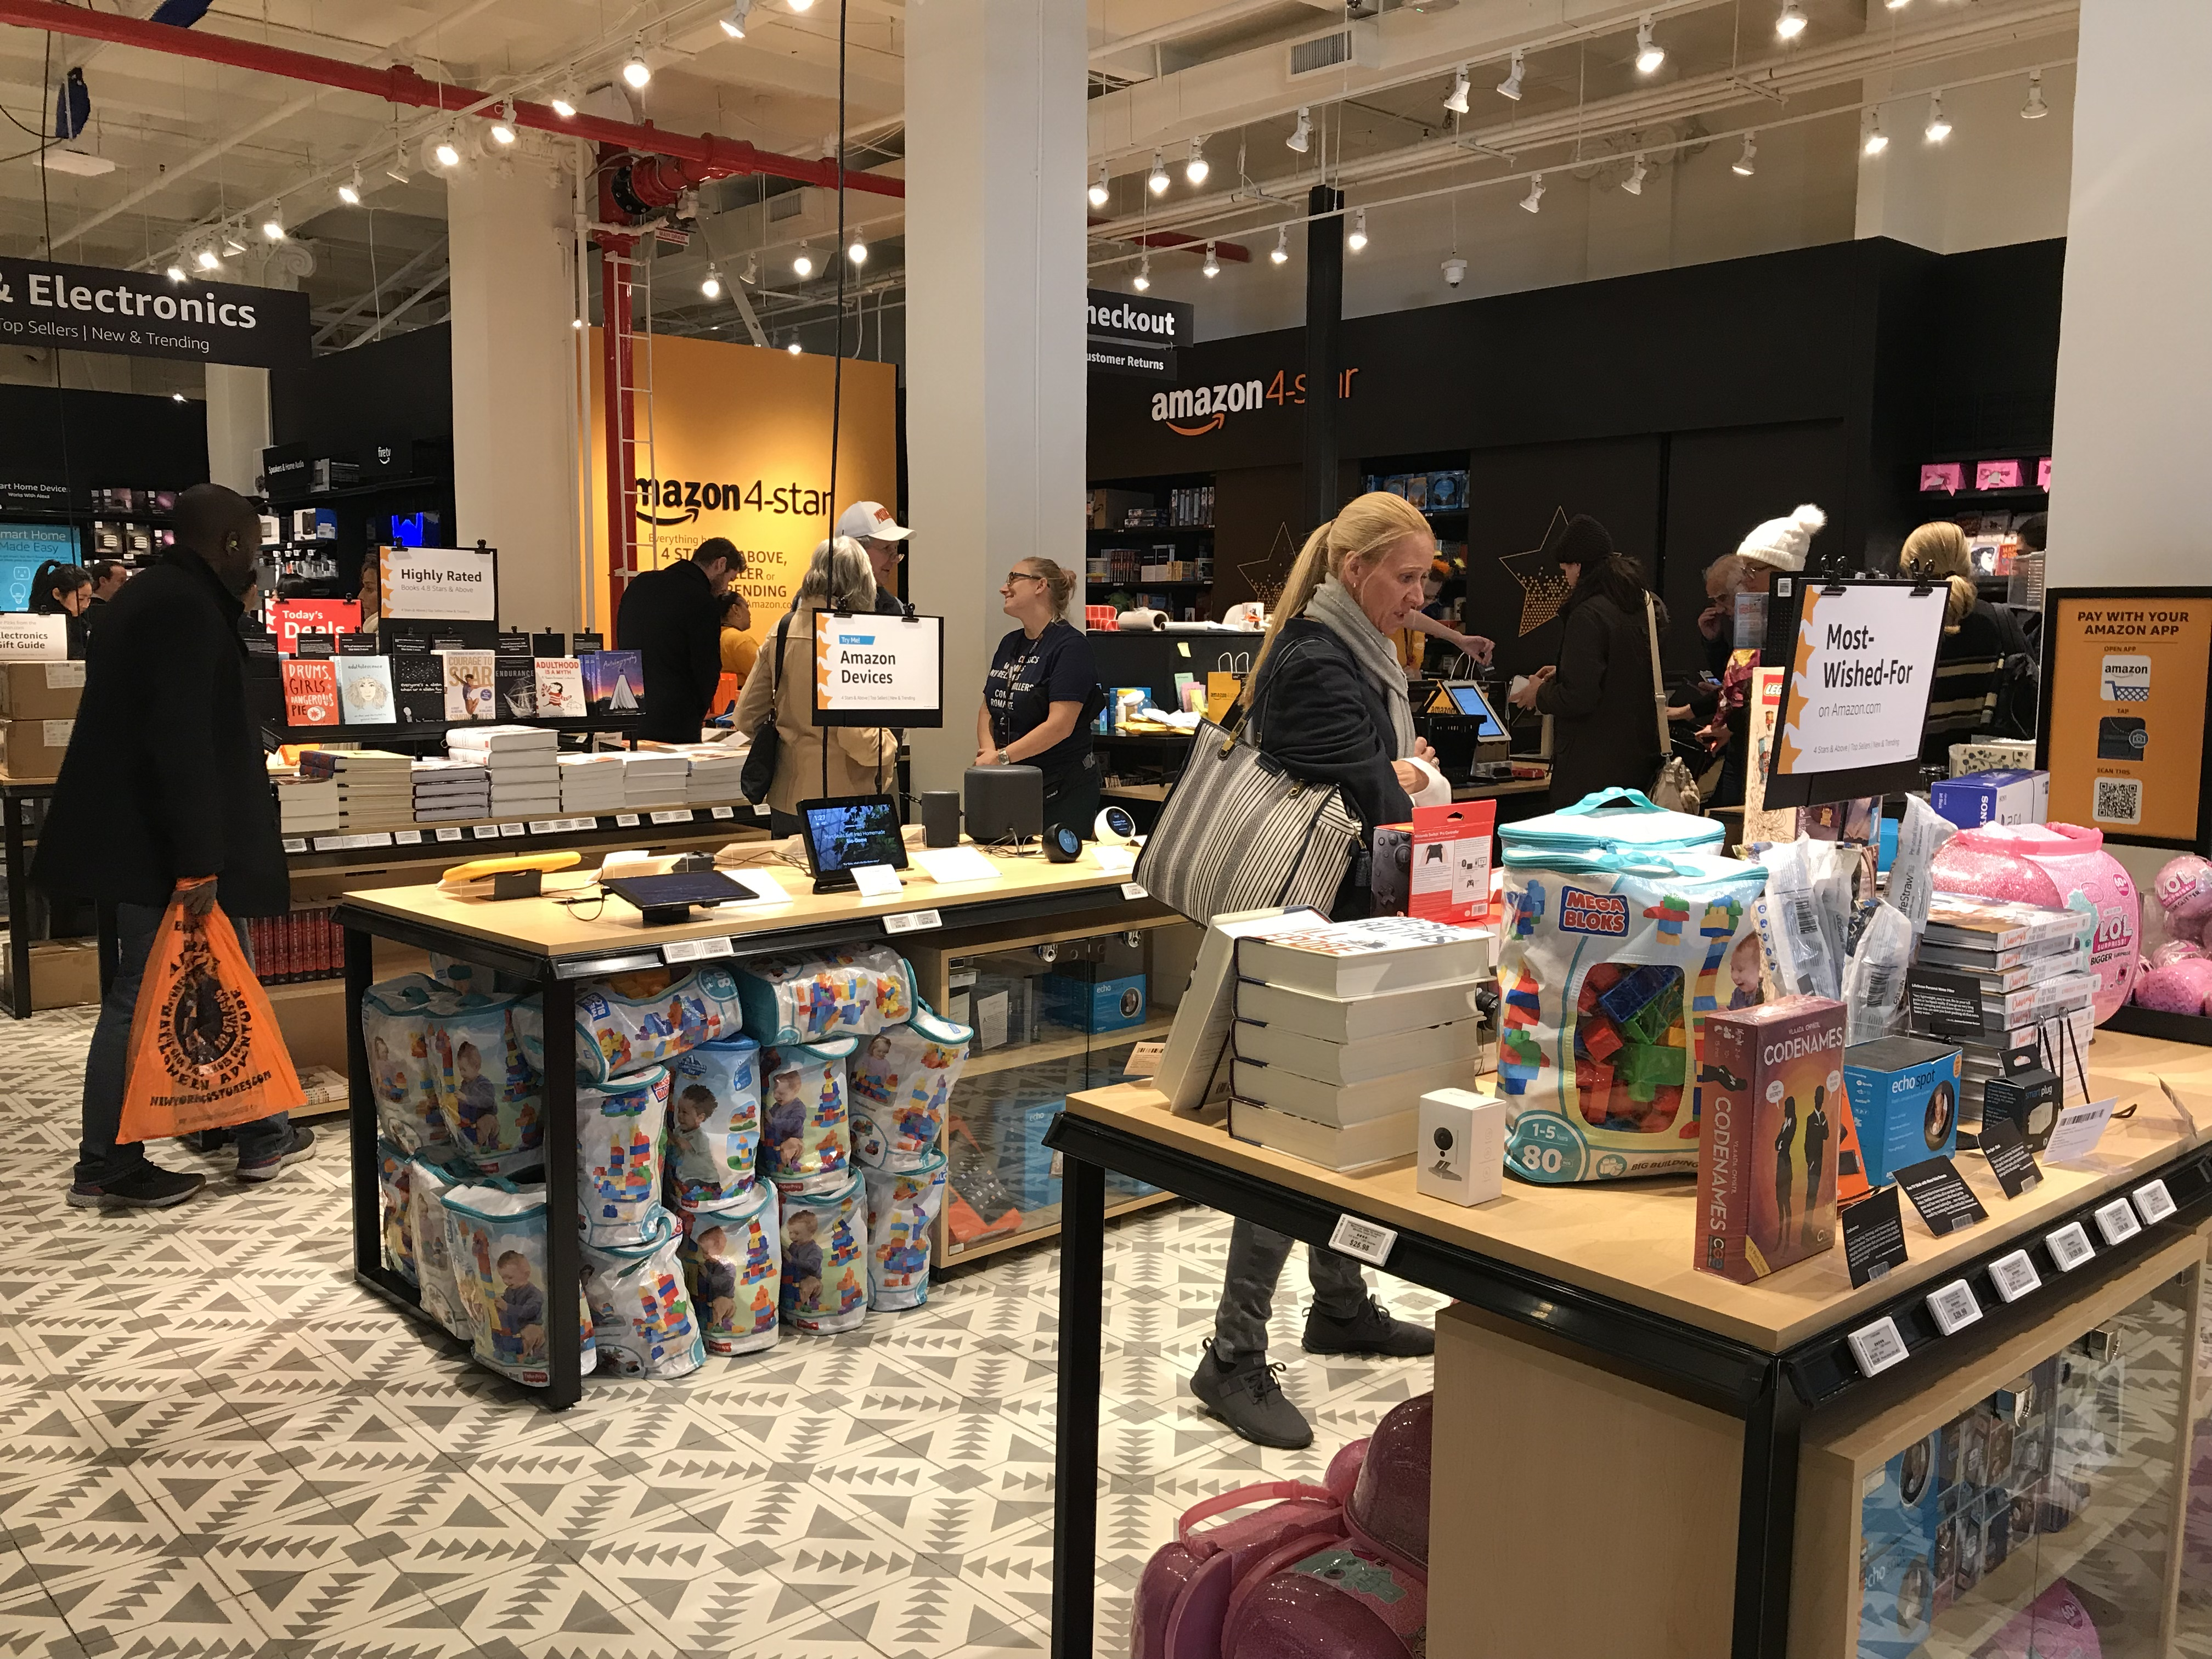 Retail tour New York – Amazon 4-Star & Books